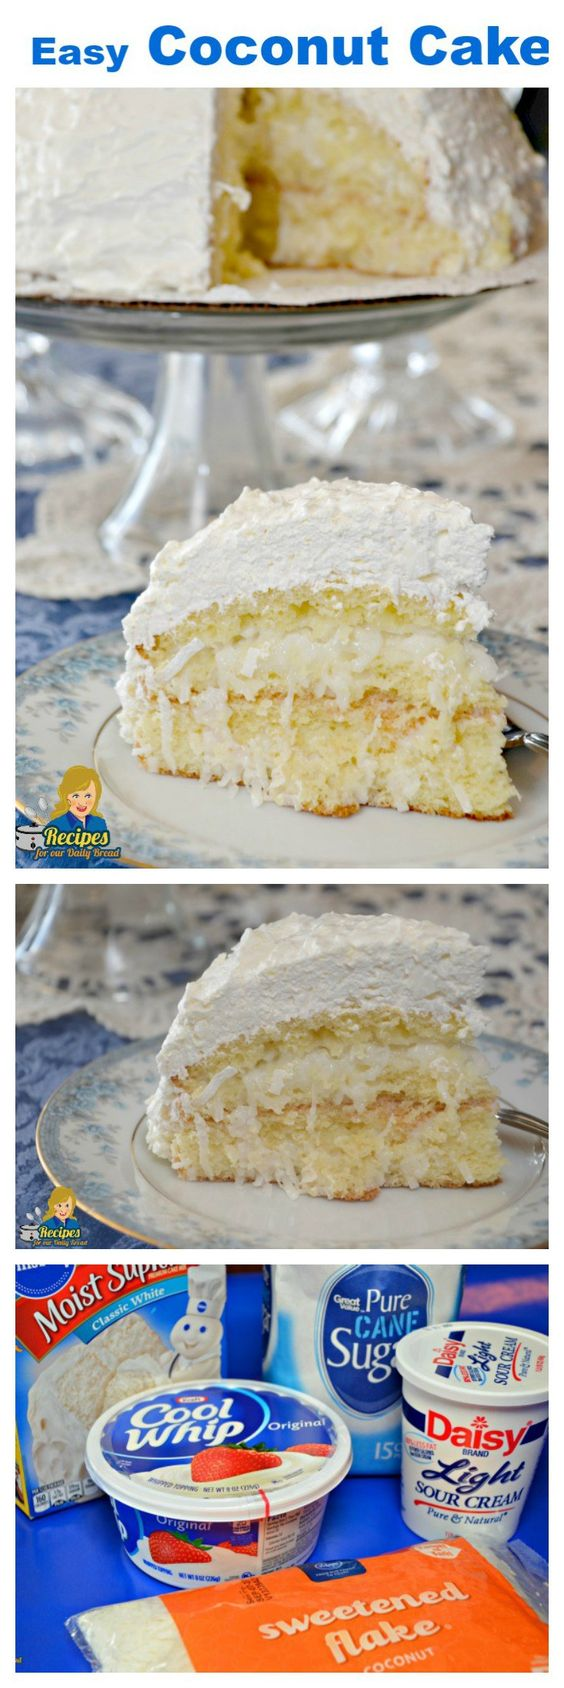 Easy coconut cake is made using 5 simple ingredients including cake